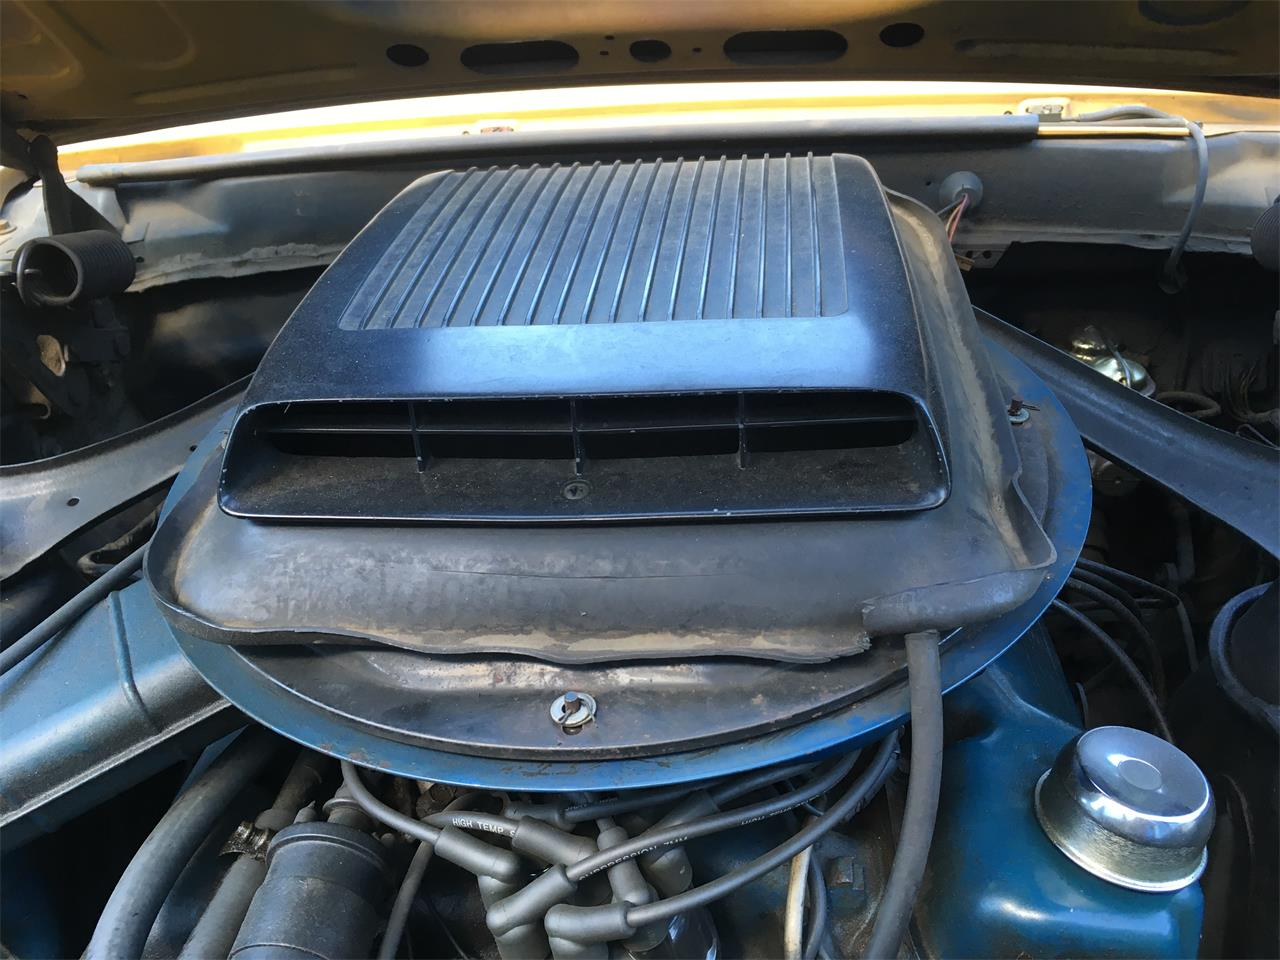 Large Picture of '70 Mustang located in Illinois - $20,000.00 Offered by a Private Seller - QI0M